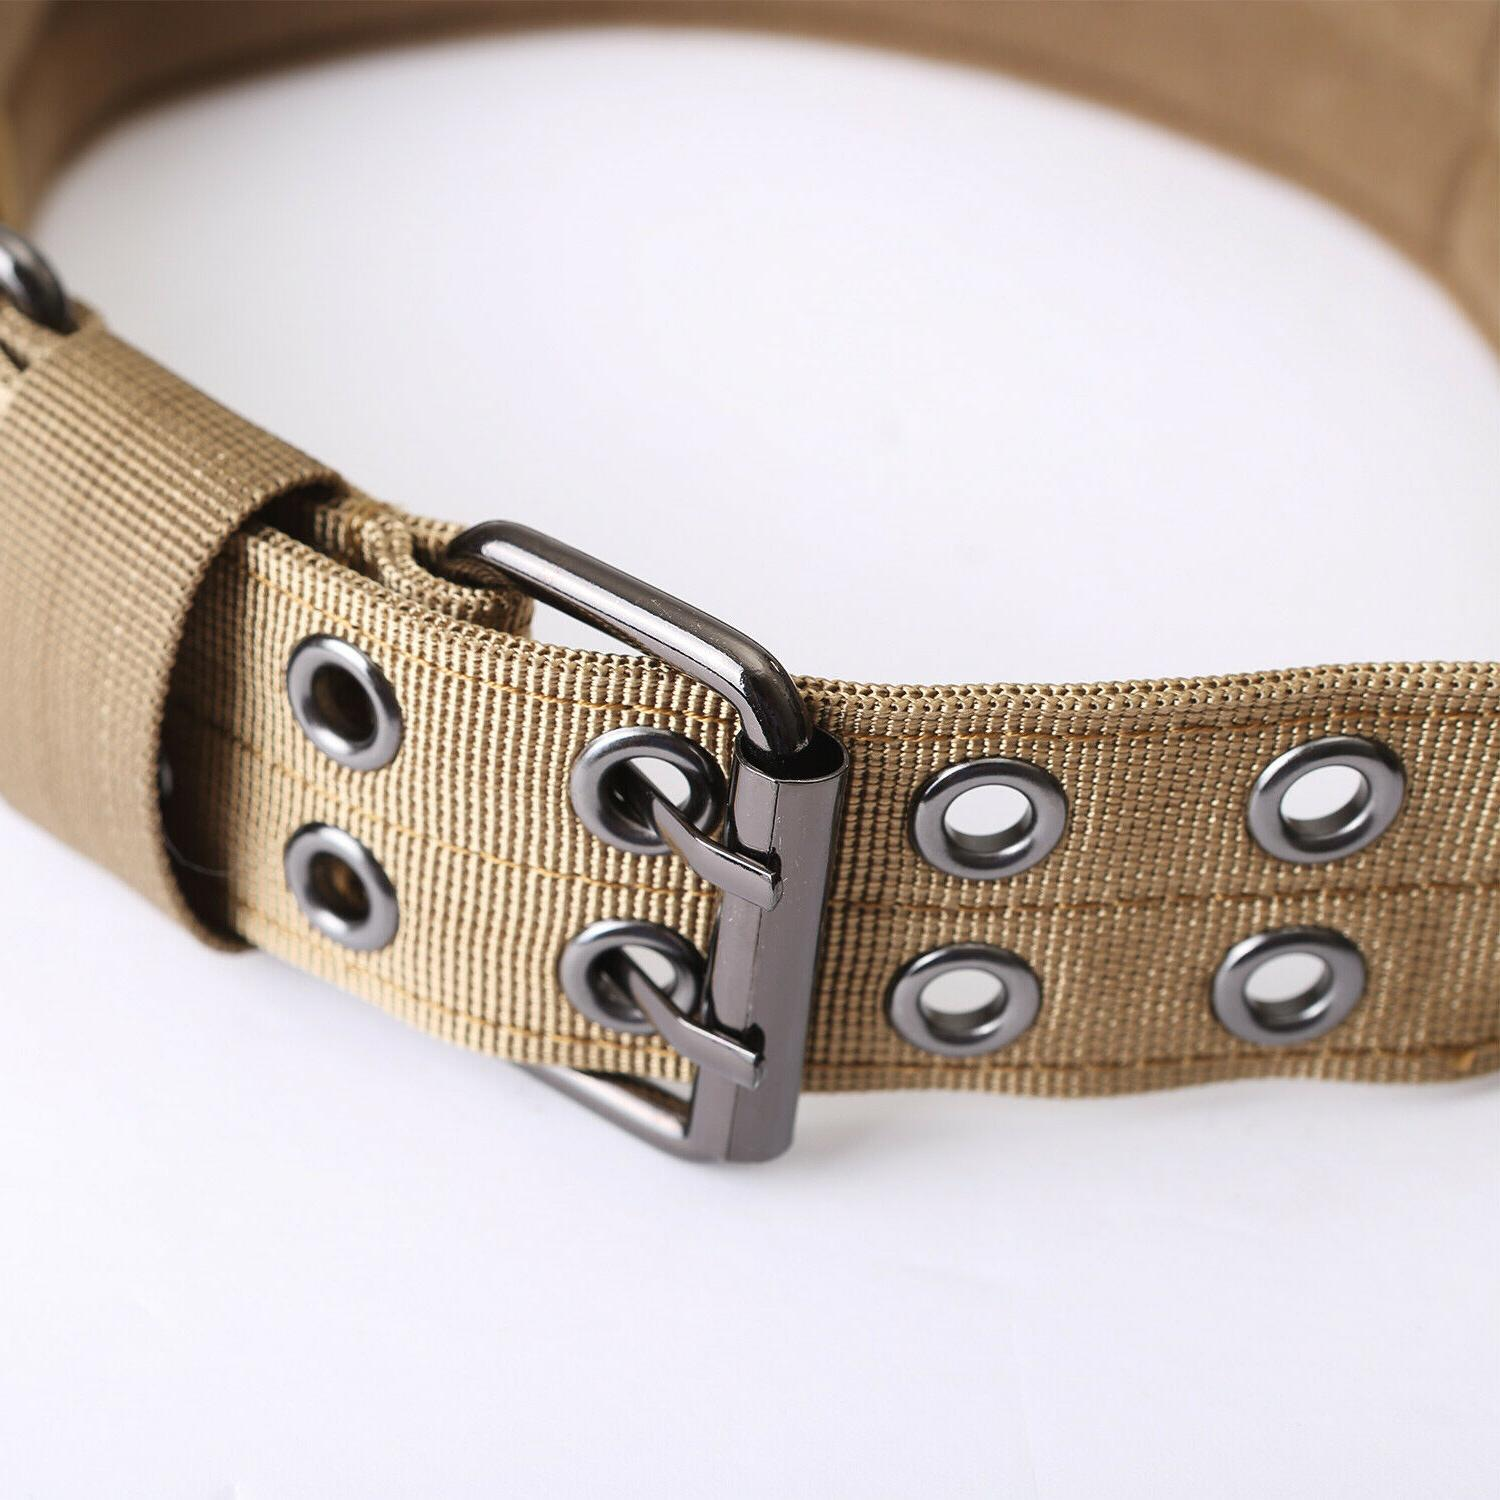 Nylon Dog Training Collars Canine Military Tactical for K9